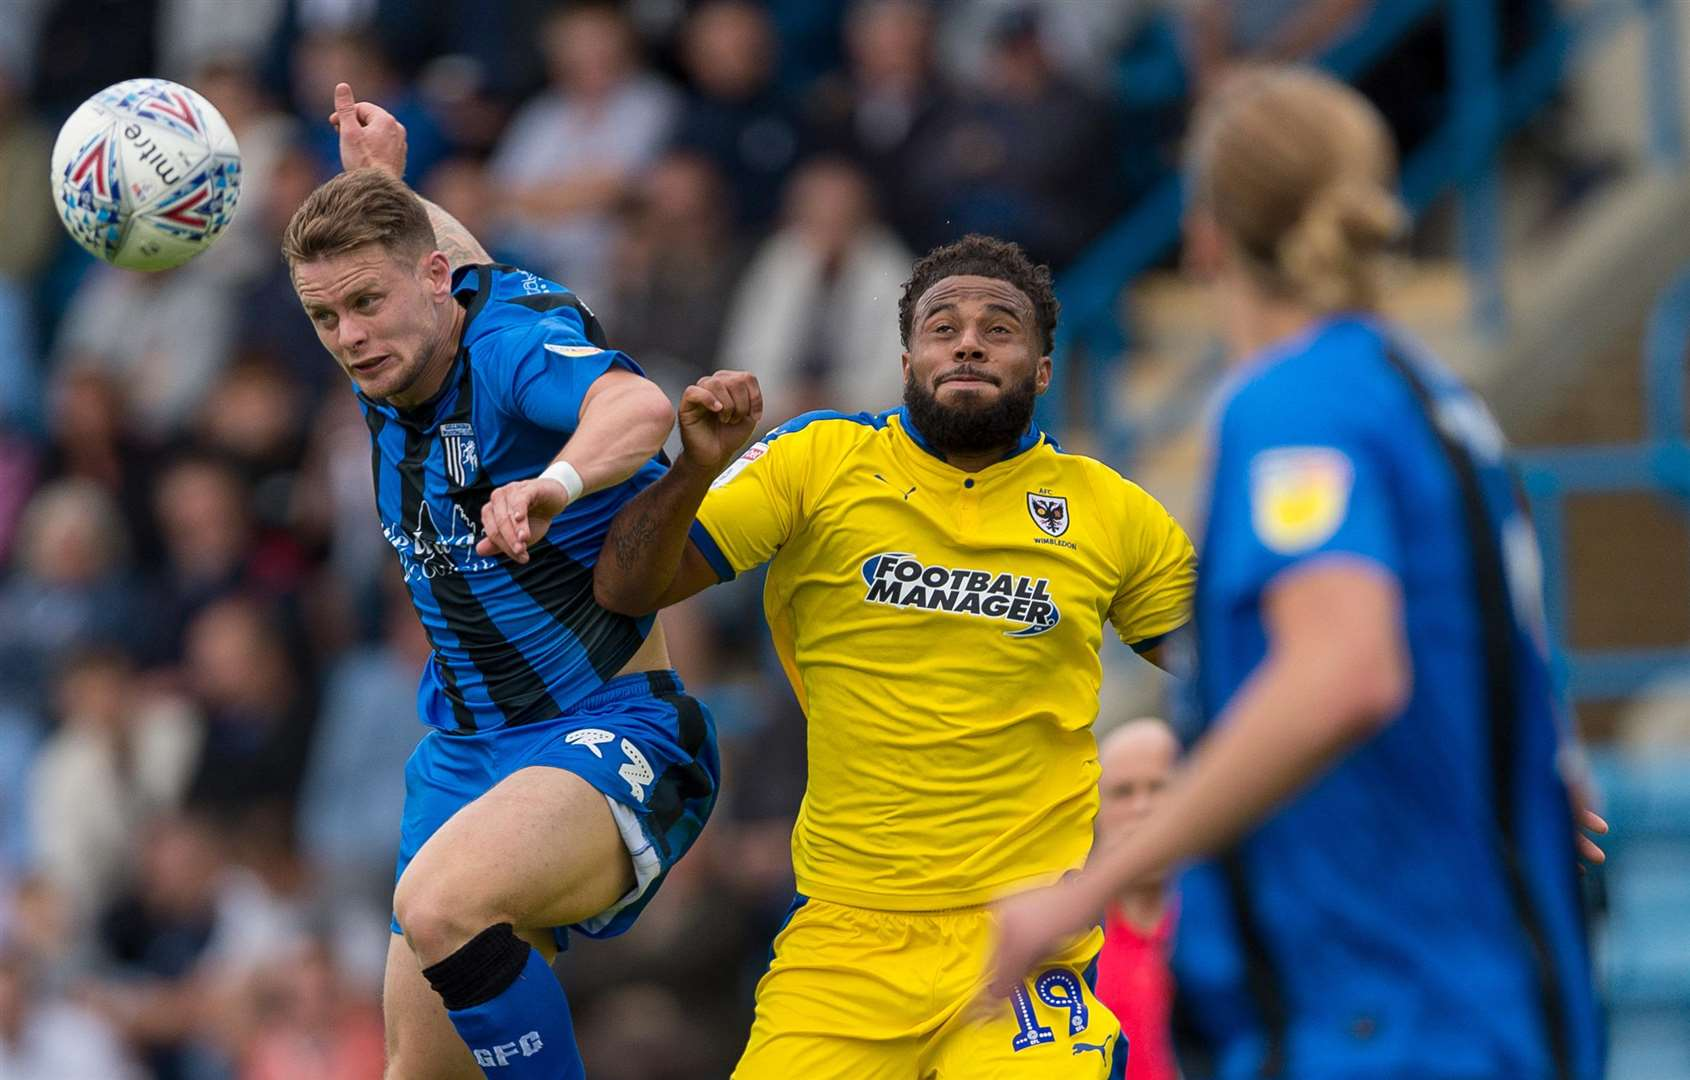 Gills' Mark Byrne challenges with Tom Soares Picture: Ady Kerry